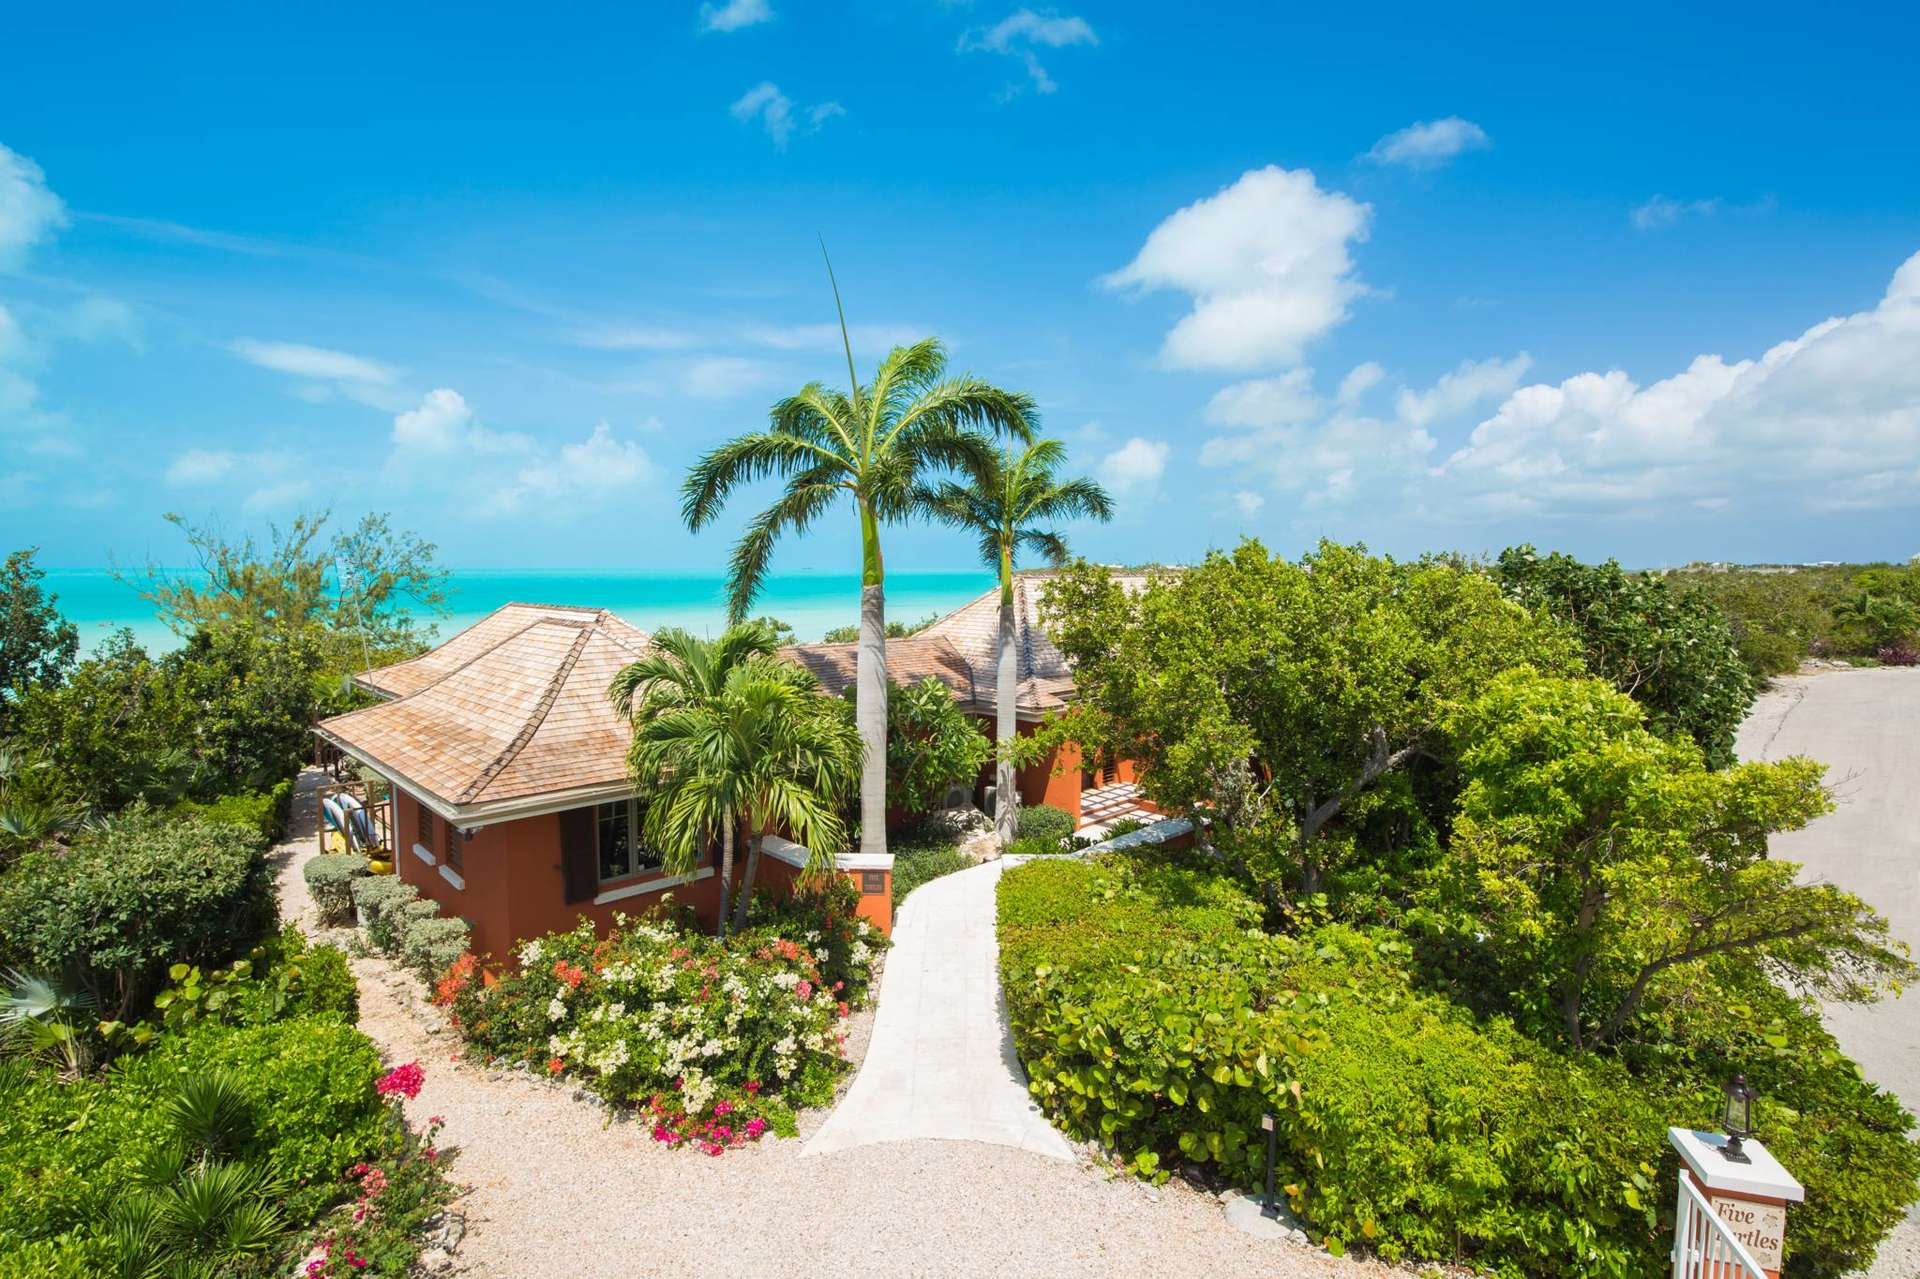 Luxury villa rentals caribbean - Turks and caicos - Providenciales - Chalk sound taylor bay - Five Turtles Villa - Image 1/21